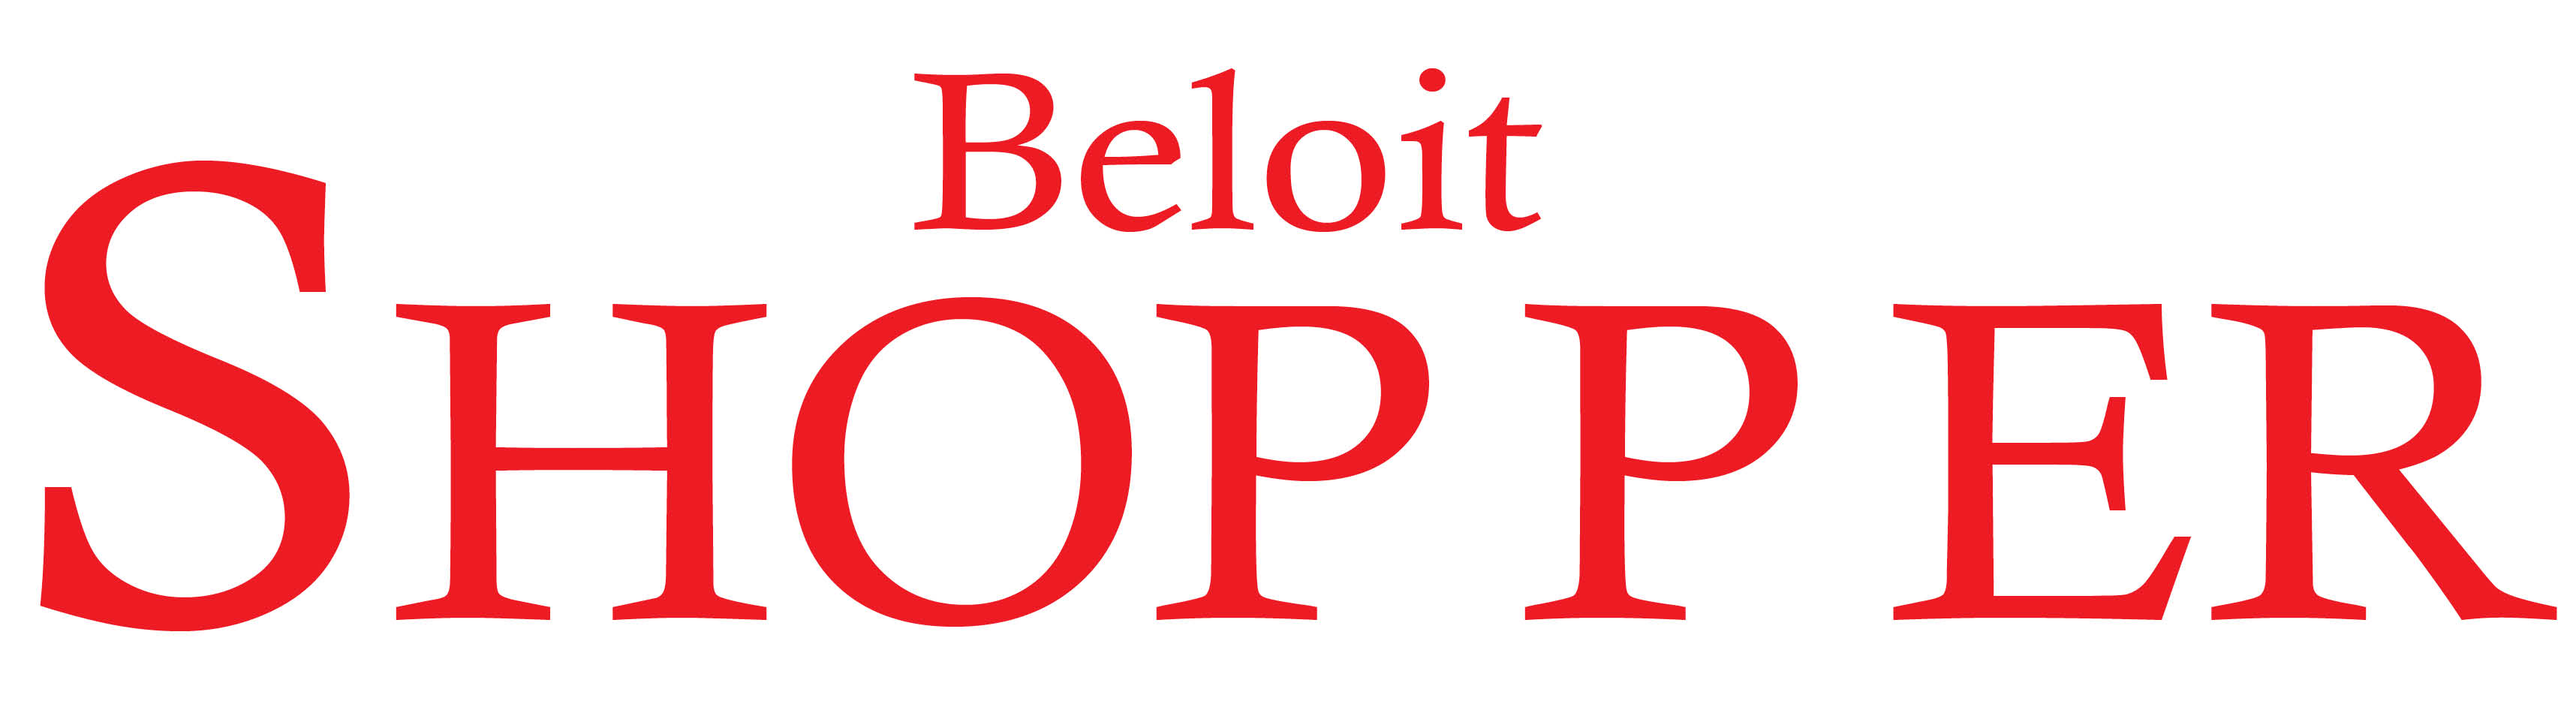 8/9/18 Beloit Shopper